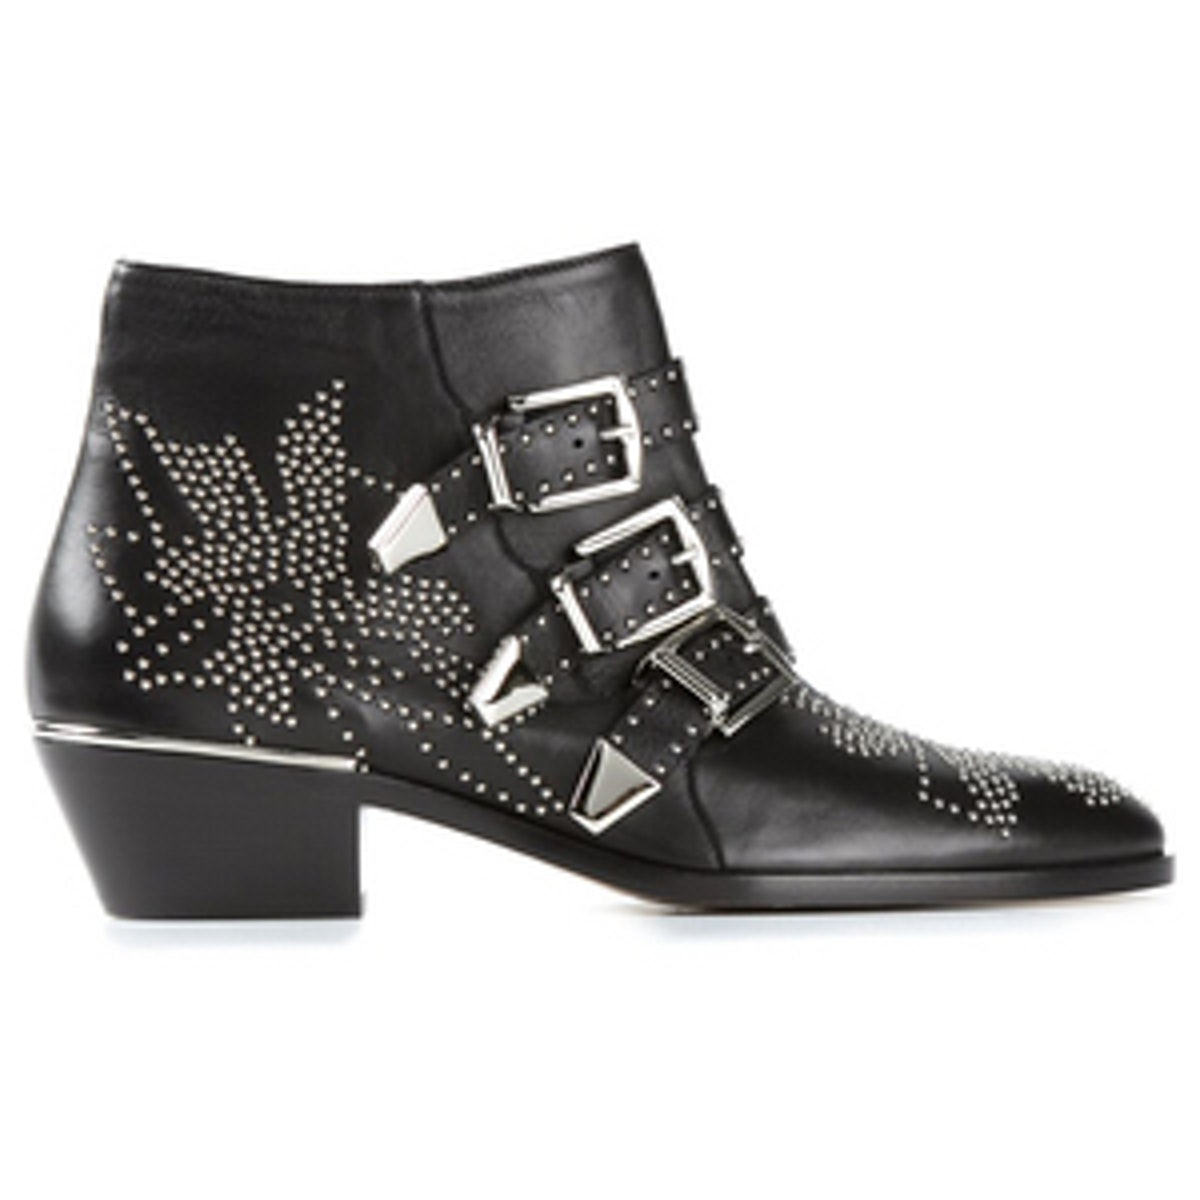 Suzanna Ankle Boots